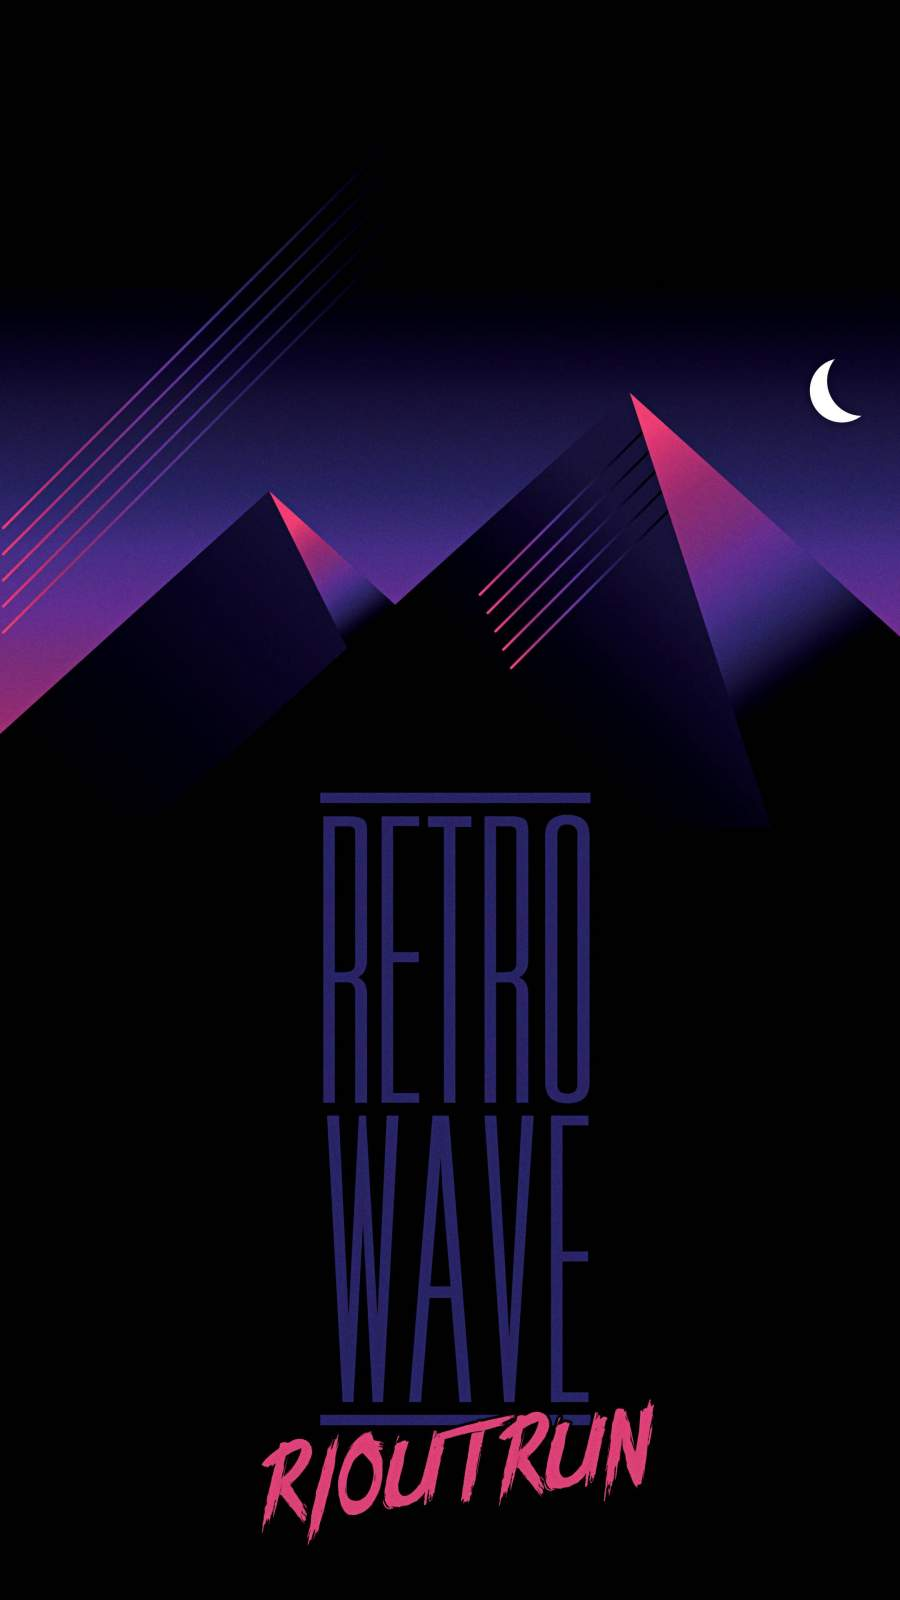 Retrowave Outrun Mountains Night iPhone Wallpaper